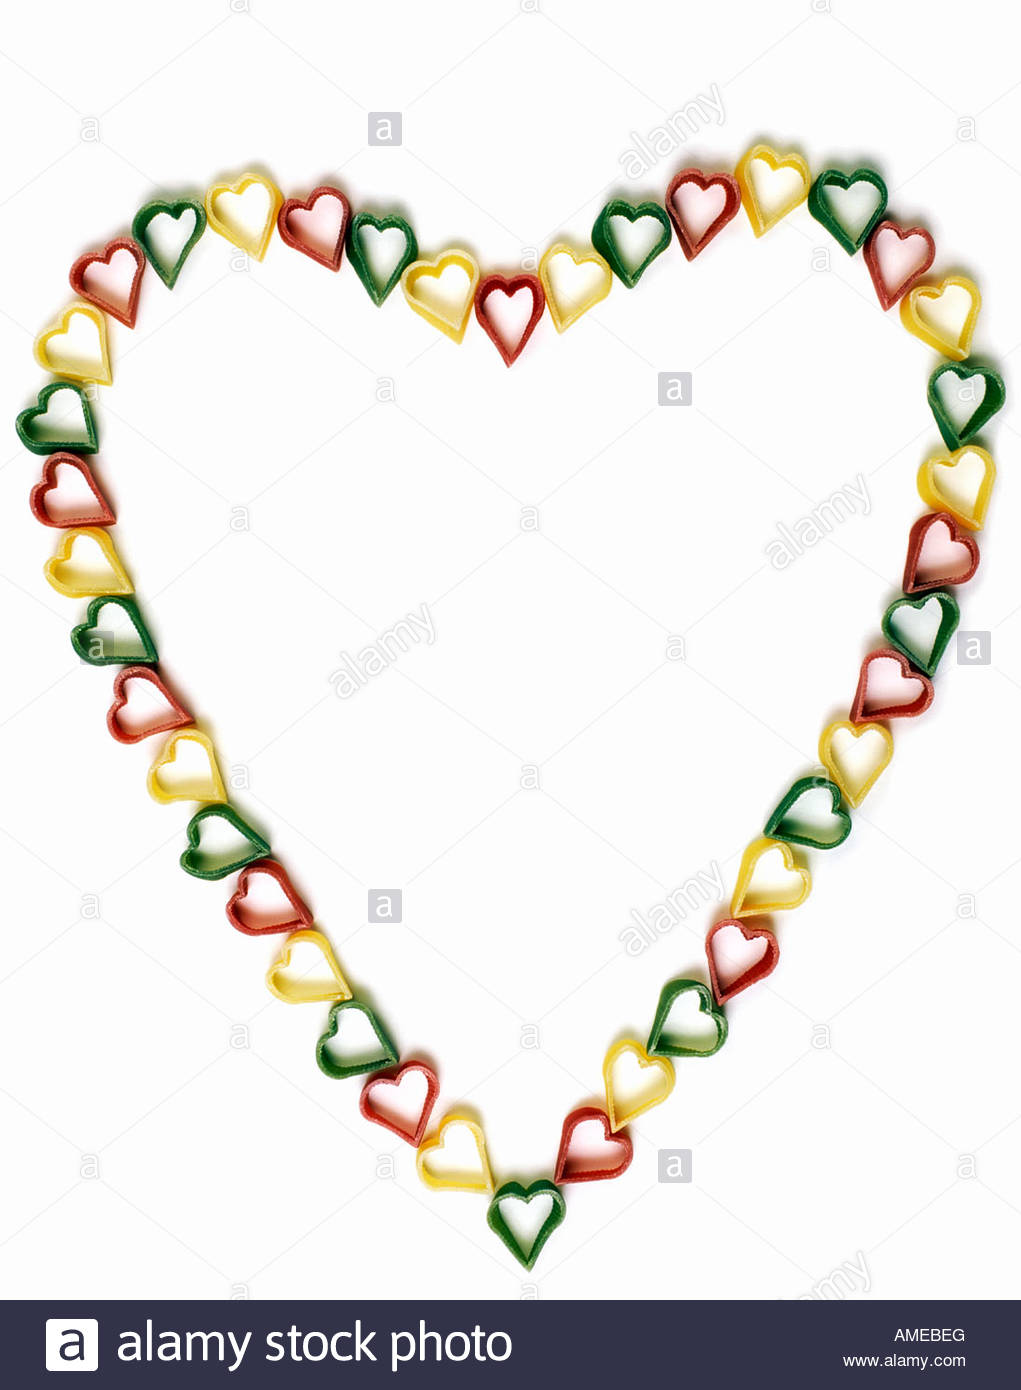 1021x1390 Individual Coloured Heart Shaped Pasta Arranged In The Outline